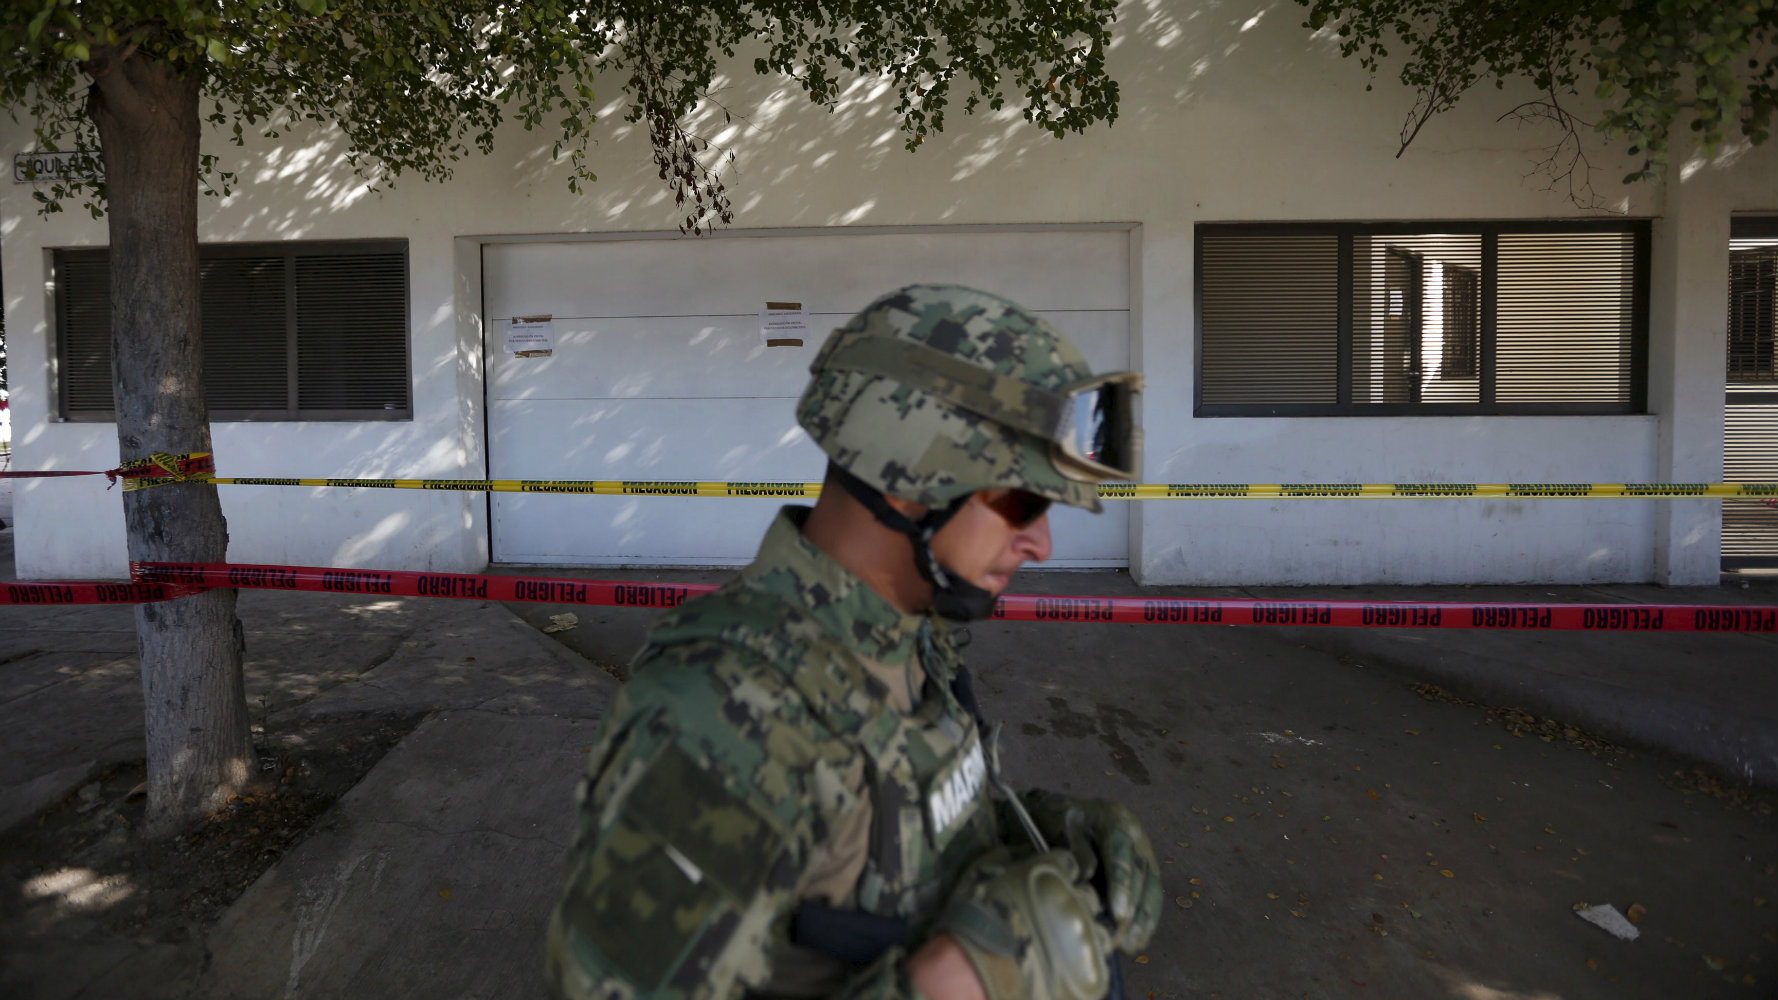 "A soldier keeps watch outside the house where five people were shot dead during an operation to recapture the world's top drug lord Joaquin ""El Chapo"" Guzman at Jiquilpan Boulevard in Los Mochis, in Sinaloa state, Mexico, January 10, 2016. A secretive meeting that Hollywood star Sean Penn orchestrated with Joaquin ""Chapo"" Guzman in a jungle hideout late last year helped Mexico's government catch the world's most wanted drug lord, sources said. Guzman, the infamous boss of the Sinaloa drug cartel, was arrested in northwest Mexico on Friday morning, and sent back to the prison he broke out of in July through a mile-long tunnel that led straight into his cell. Mexico aims to extradite Guzman to the United States as soon as possible. REUTERS/Edgard Garrido"